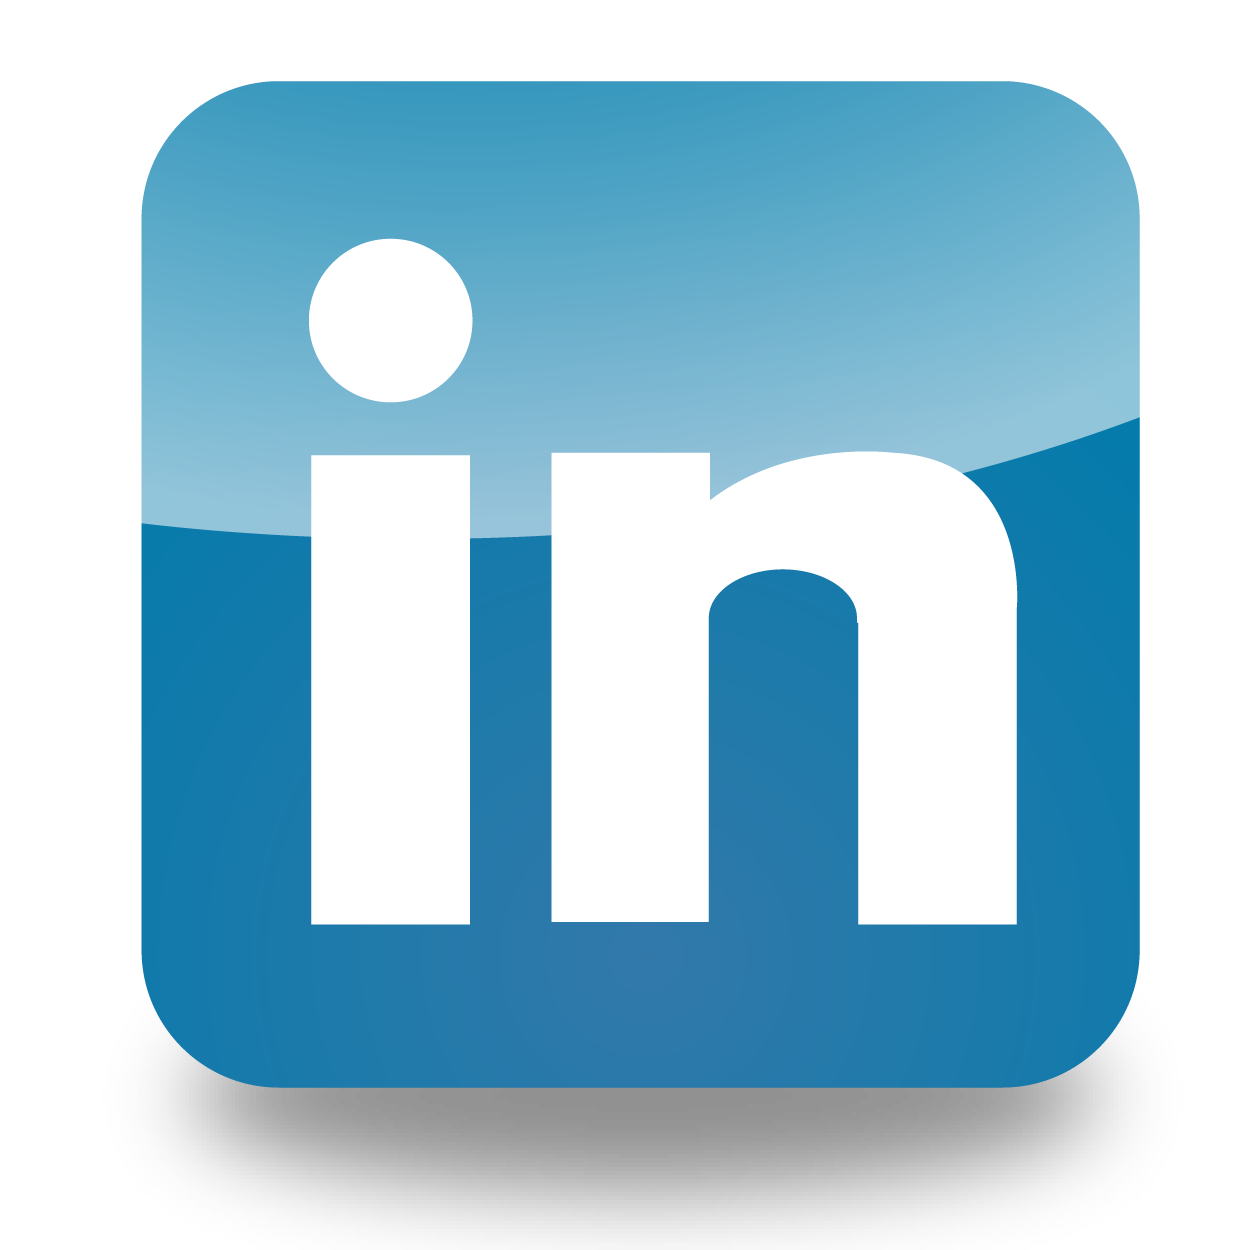 linkedin profile development services